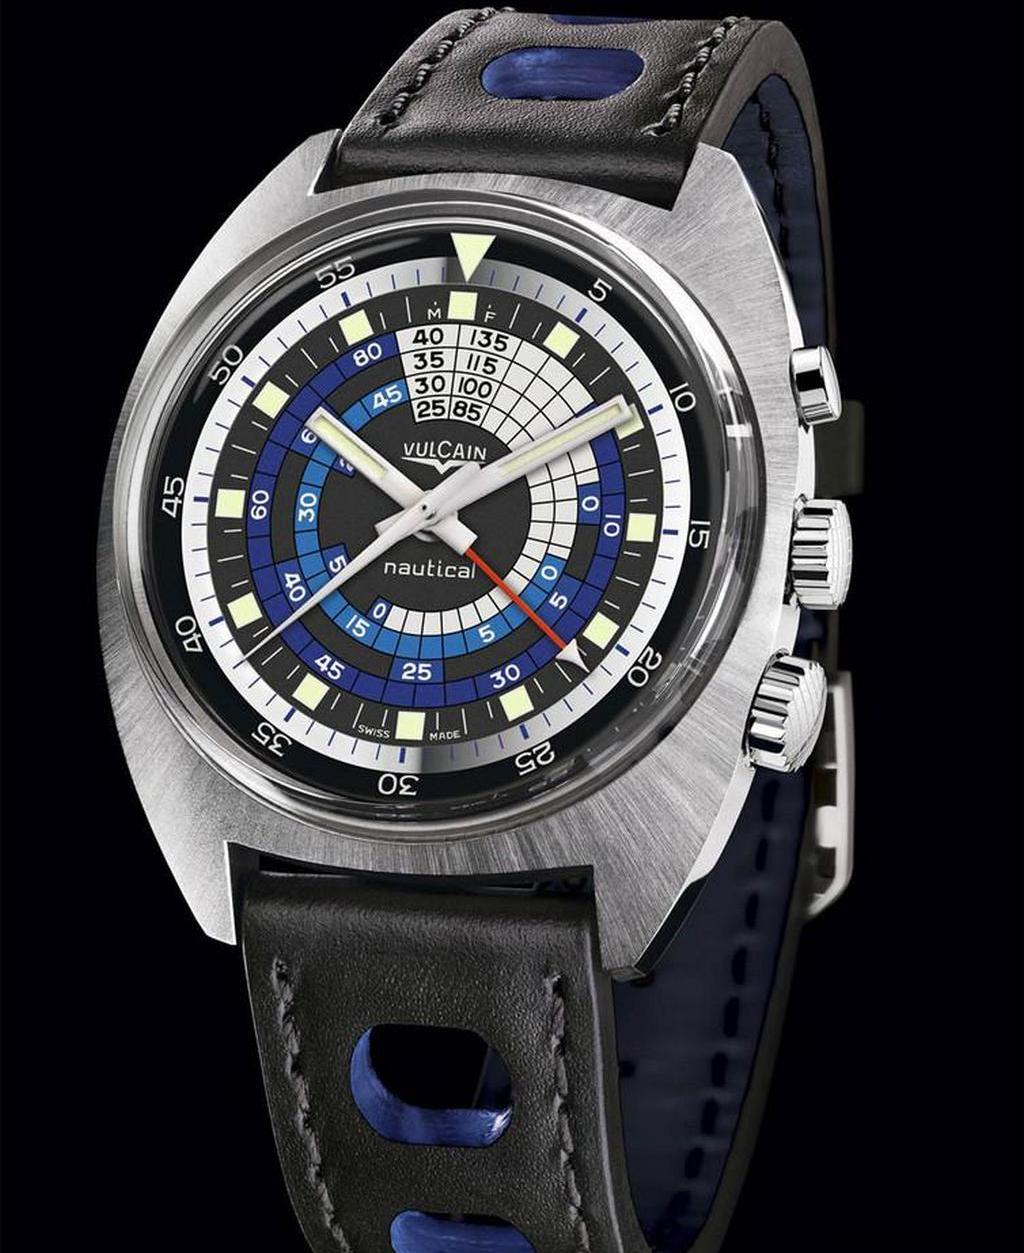 nautical-seventies-blue-limited-edition-vulcain-trophy-2013_0-100_1